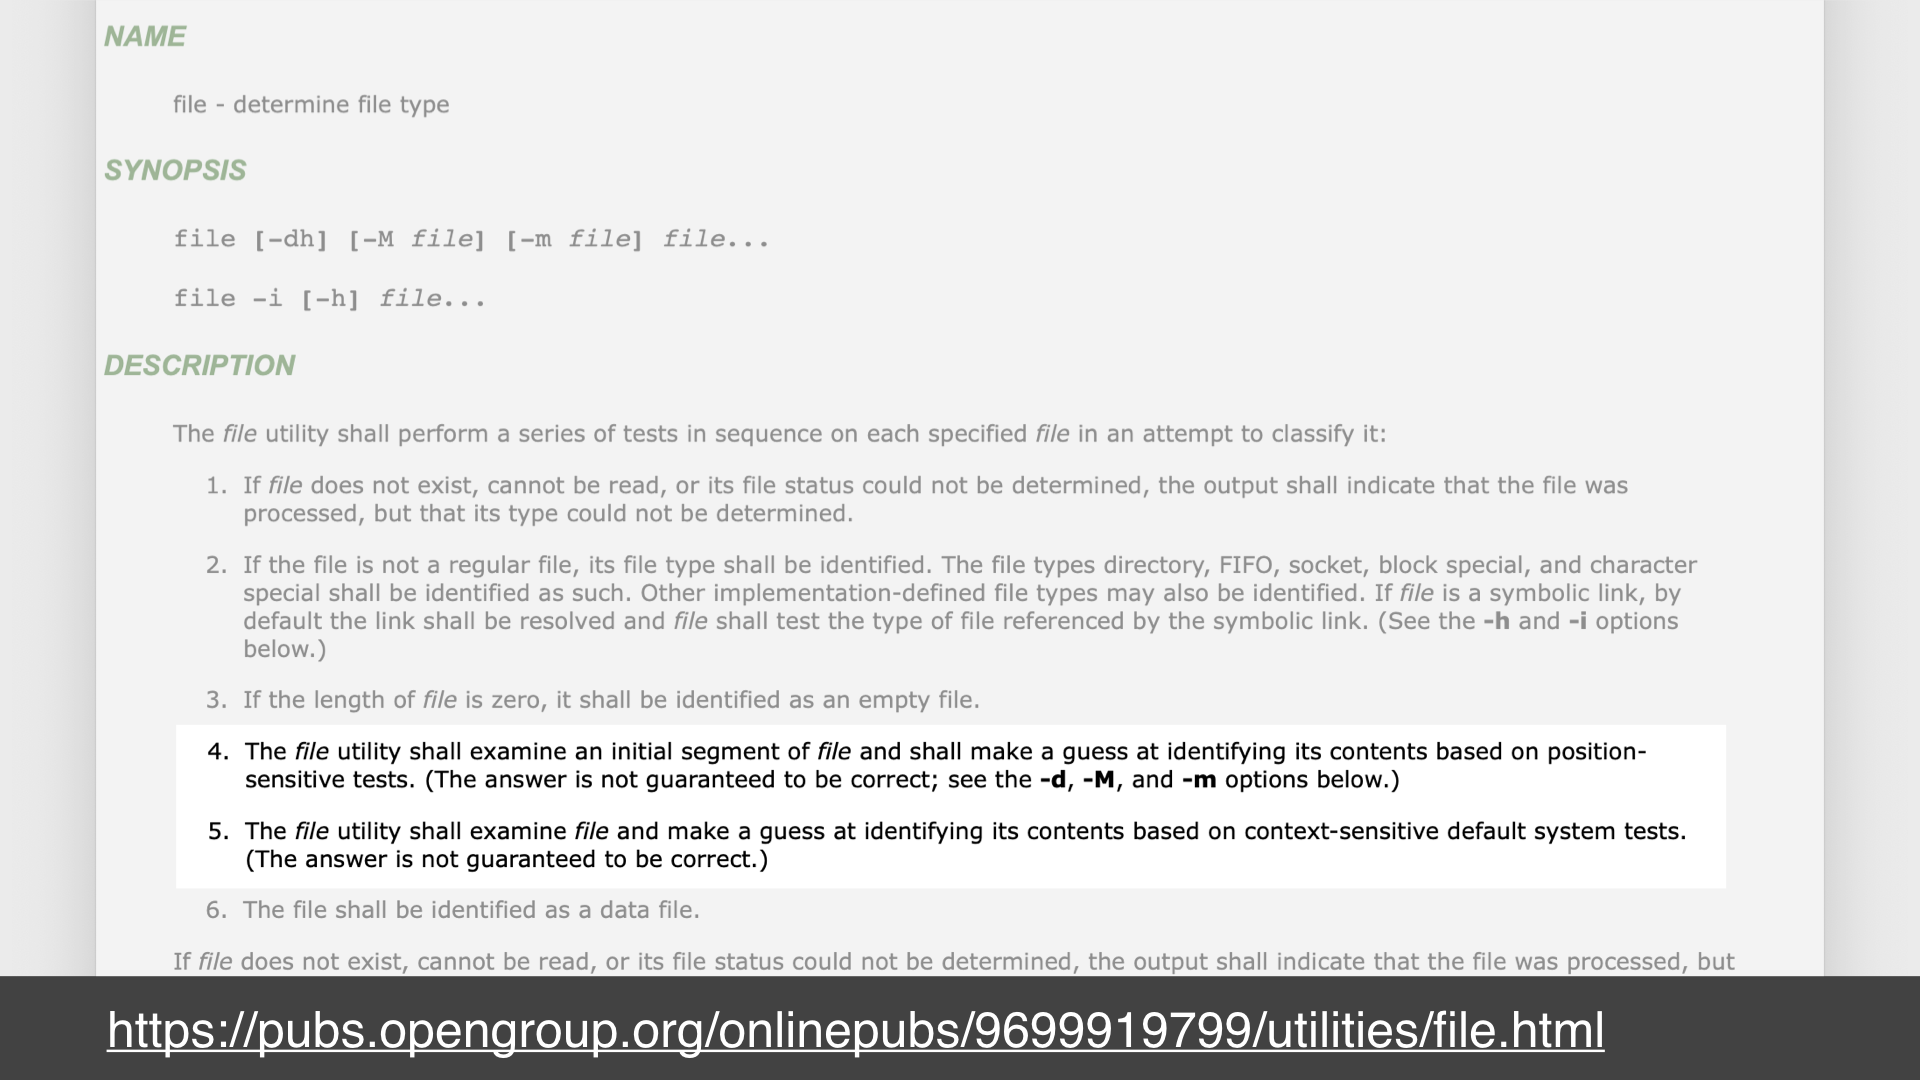 Screenshot of a webpage of the man page for the unix `file` command; url: https://pubs.opengroup.org/onlinepubs/9699919799/utilities/file.html; highlighted text: 4. the file utility shall examine an initial segment of file and shall make a guess at identifying its contents based on position-sensitive tests. (The answer is not guaranteed to be correct; see the -d, -M, and -m options below); 5. The file utility shall examine file and make a guess at identifying its contents based on context-sensitive default system tests. (The answer is not guaranteed to be correct.)